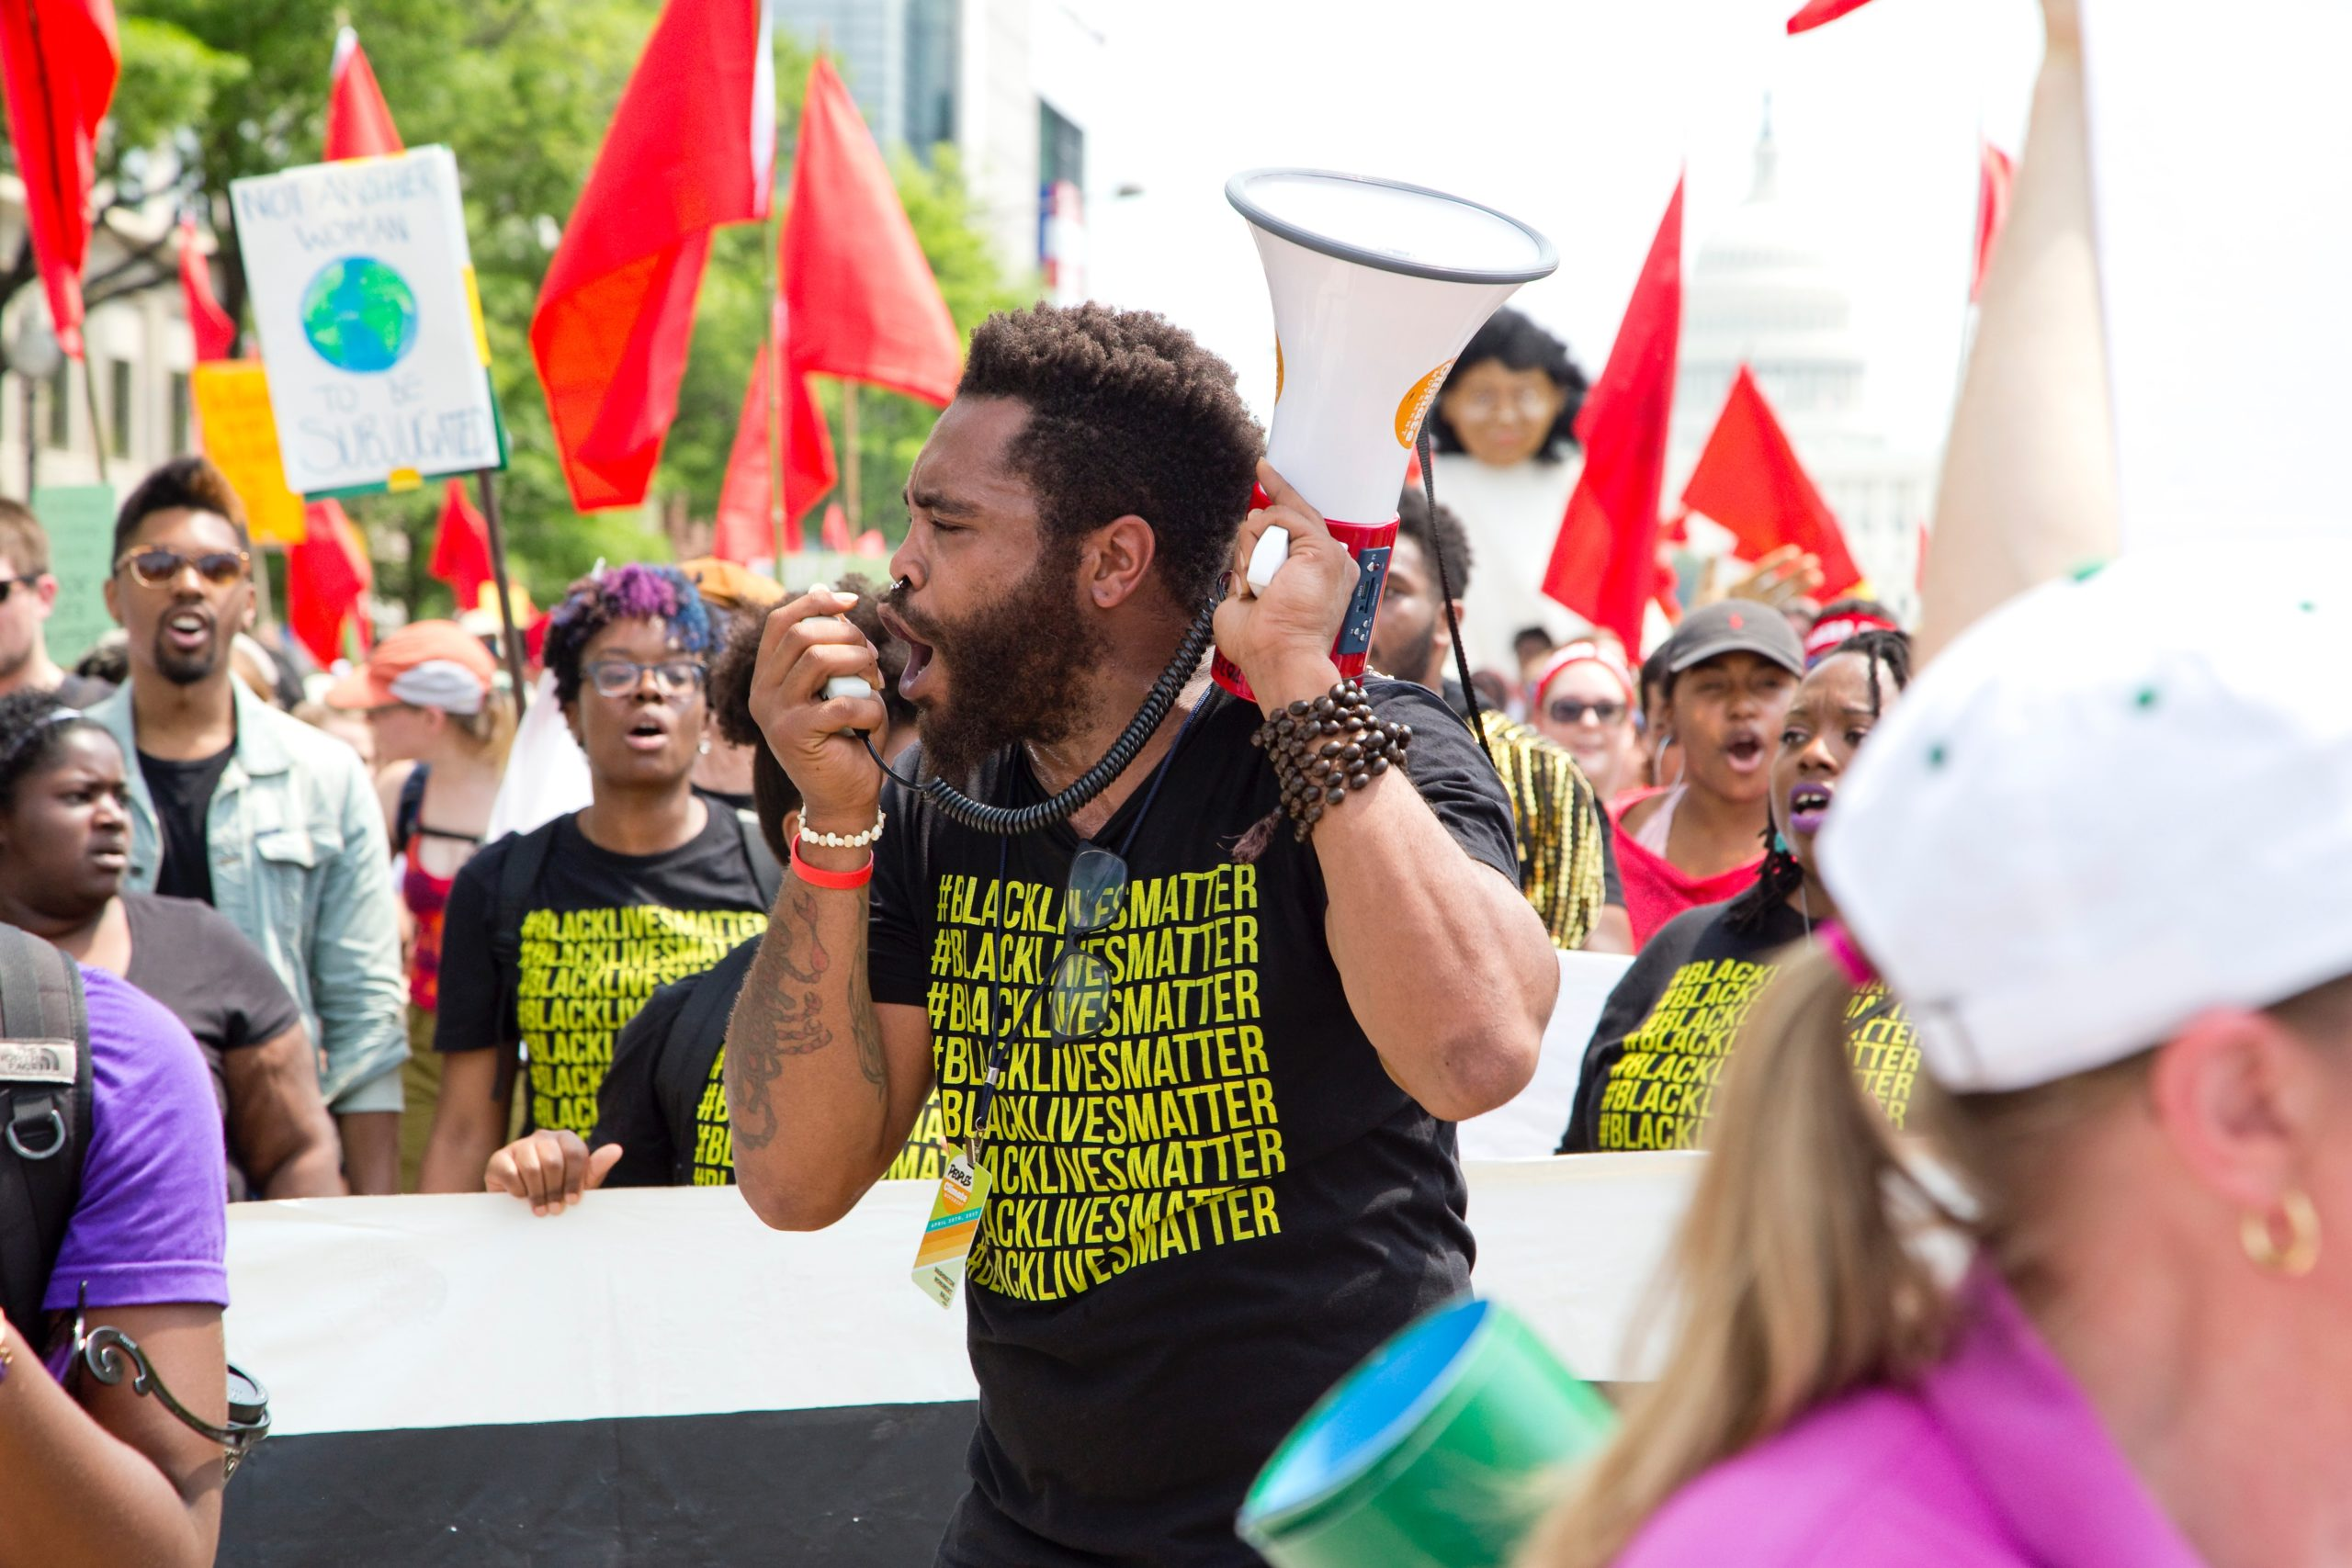 A man of color wearing a black lives matter t-shirt talks passionately into a megaphone, surrounded by other excited protestors.